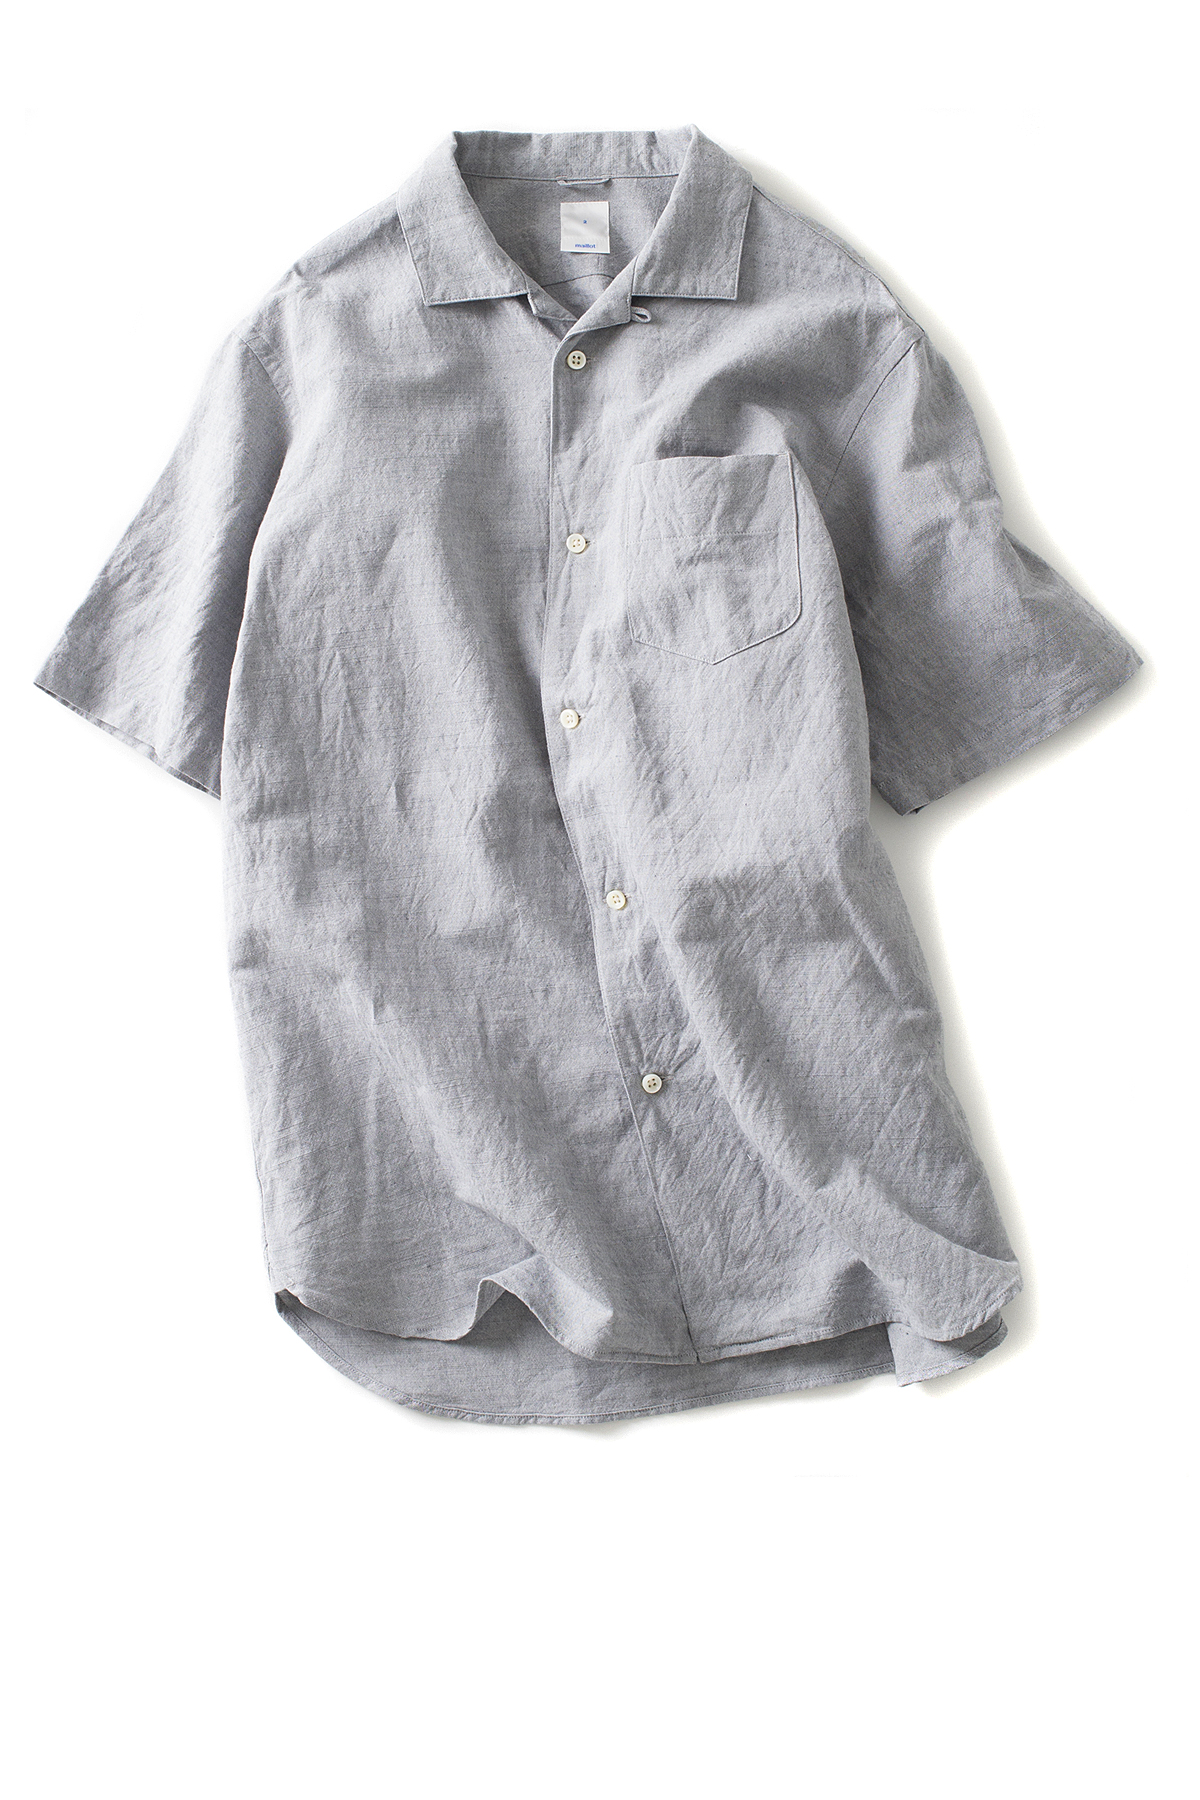 maillot : Sunset S/S Open Shirt (Gray)